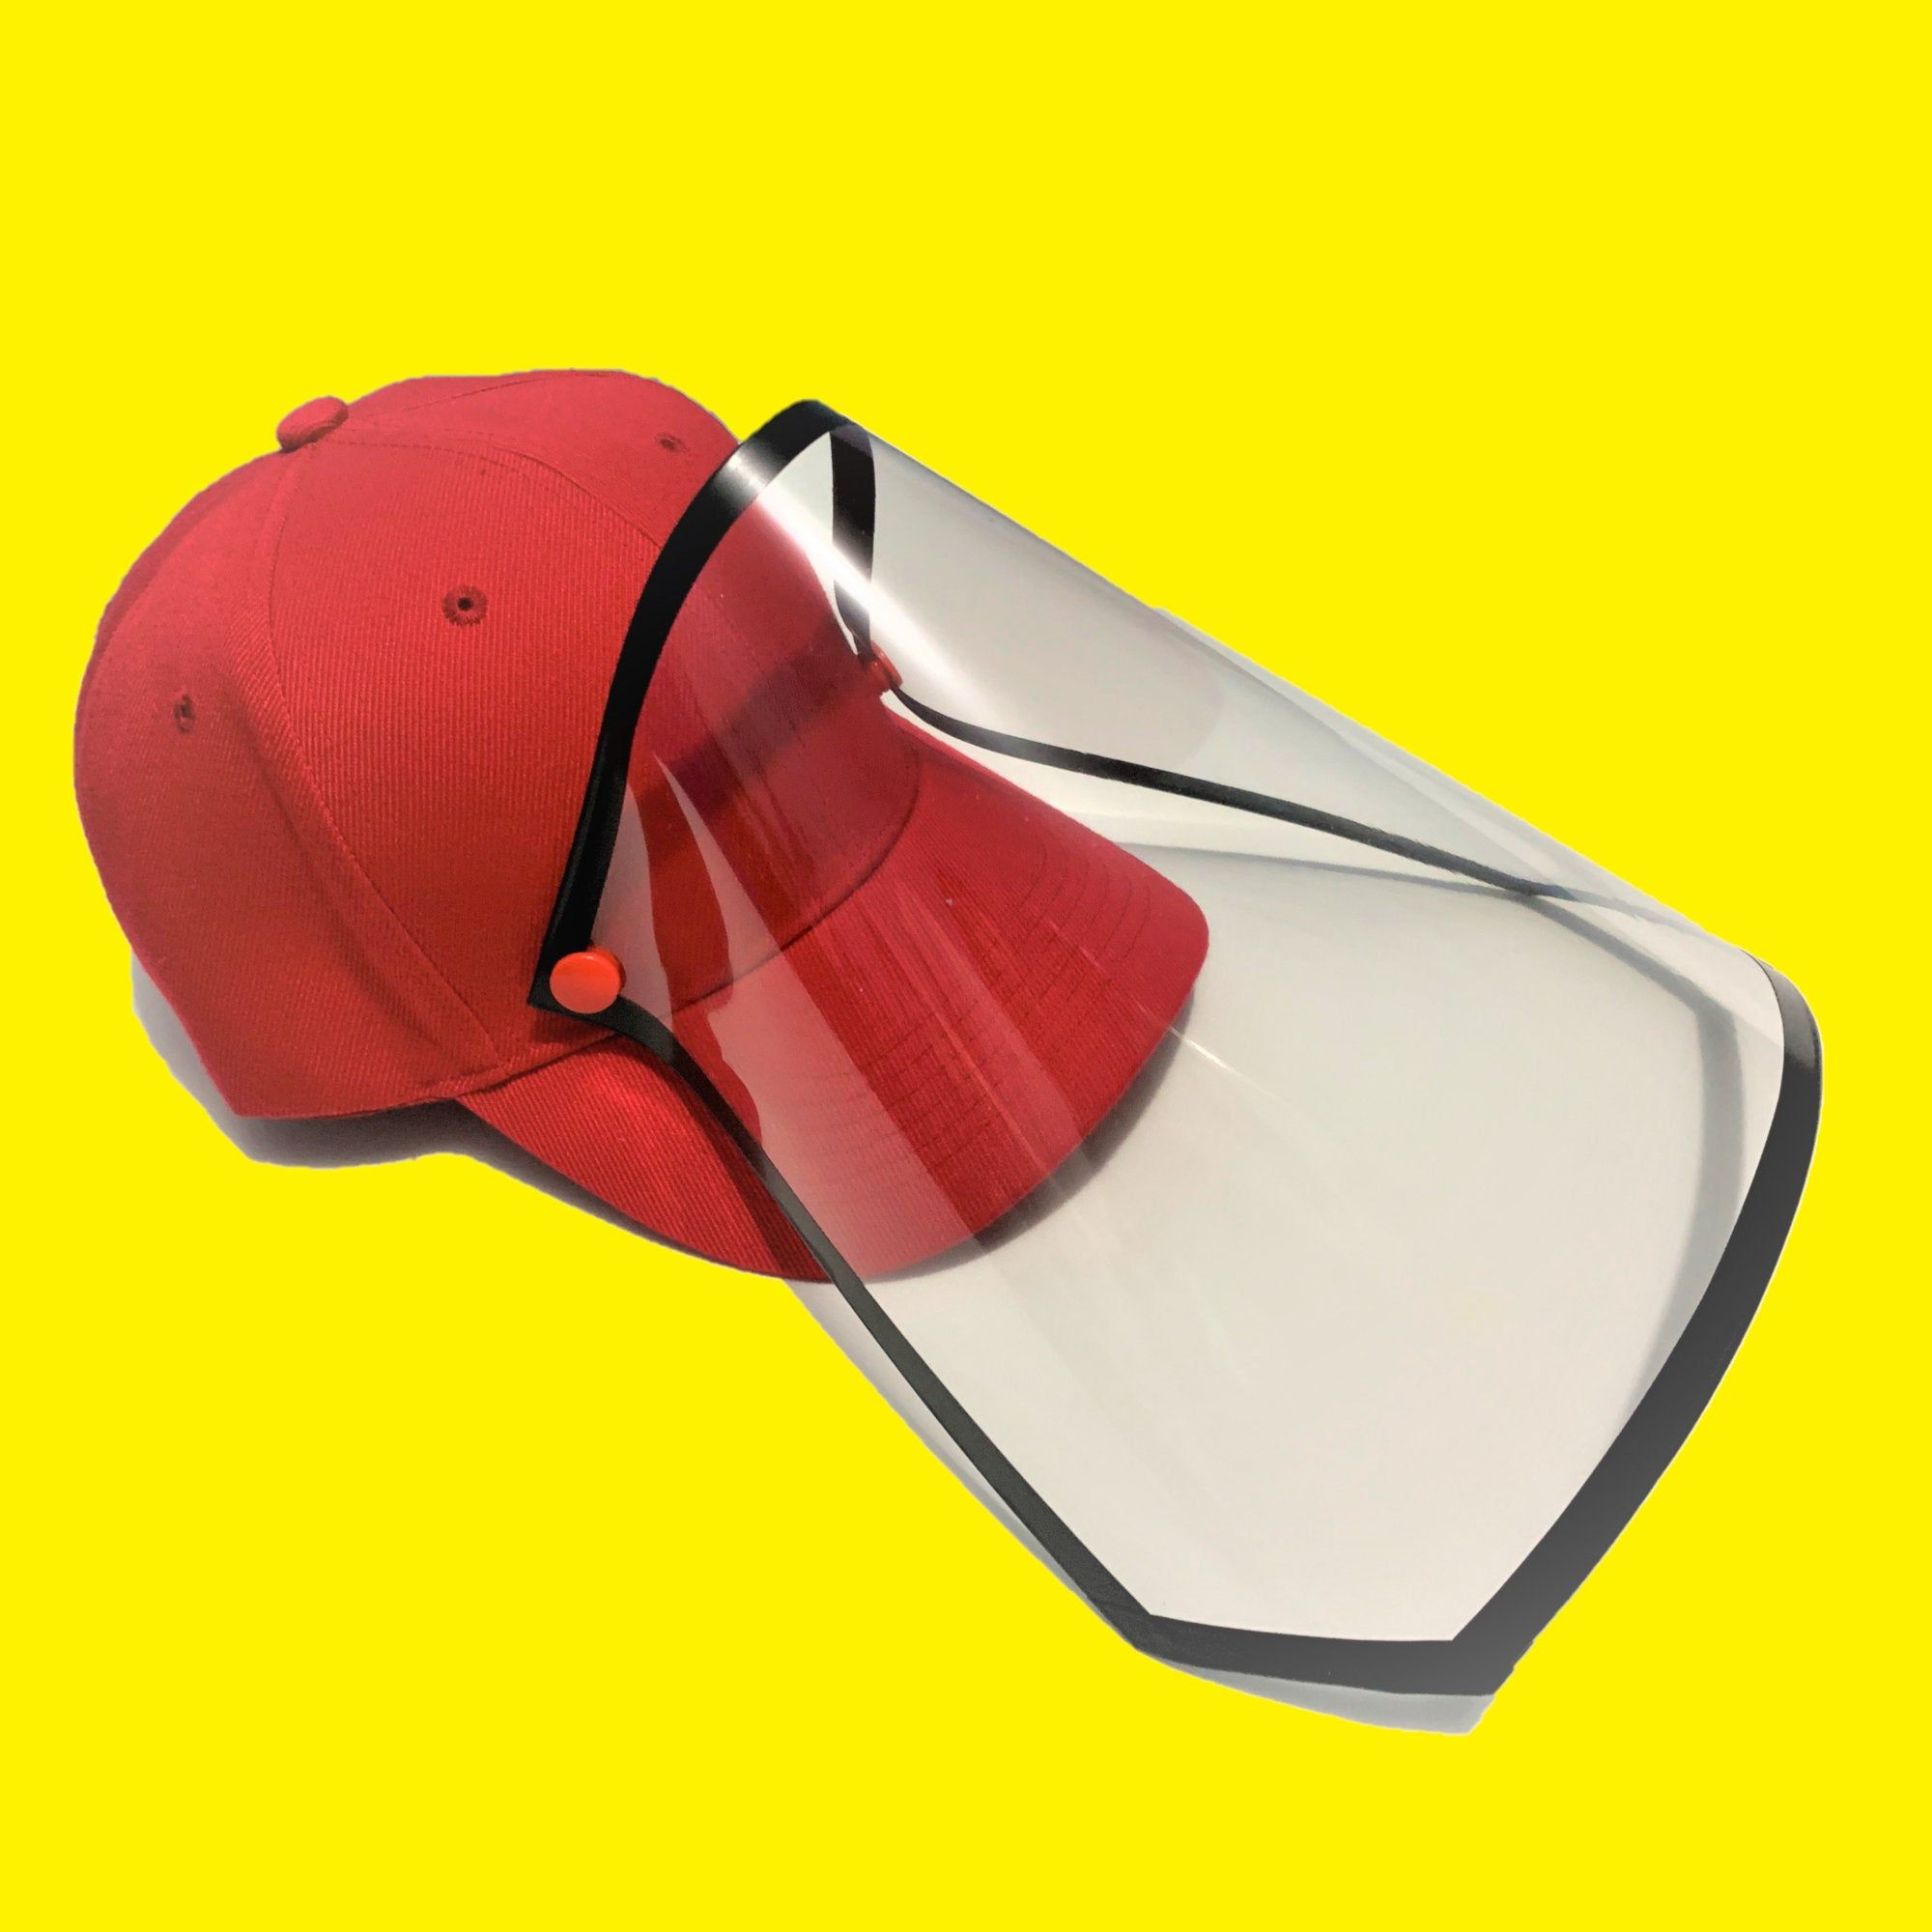 Face Shield Made In Usa Hat 2 Shields Wear With Medical Face Mask Made In Usa Reusable Clear Face Mask Clear Face Mask Face Shield Visor Face Shield Hat